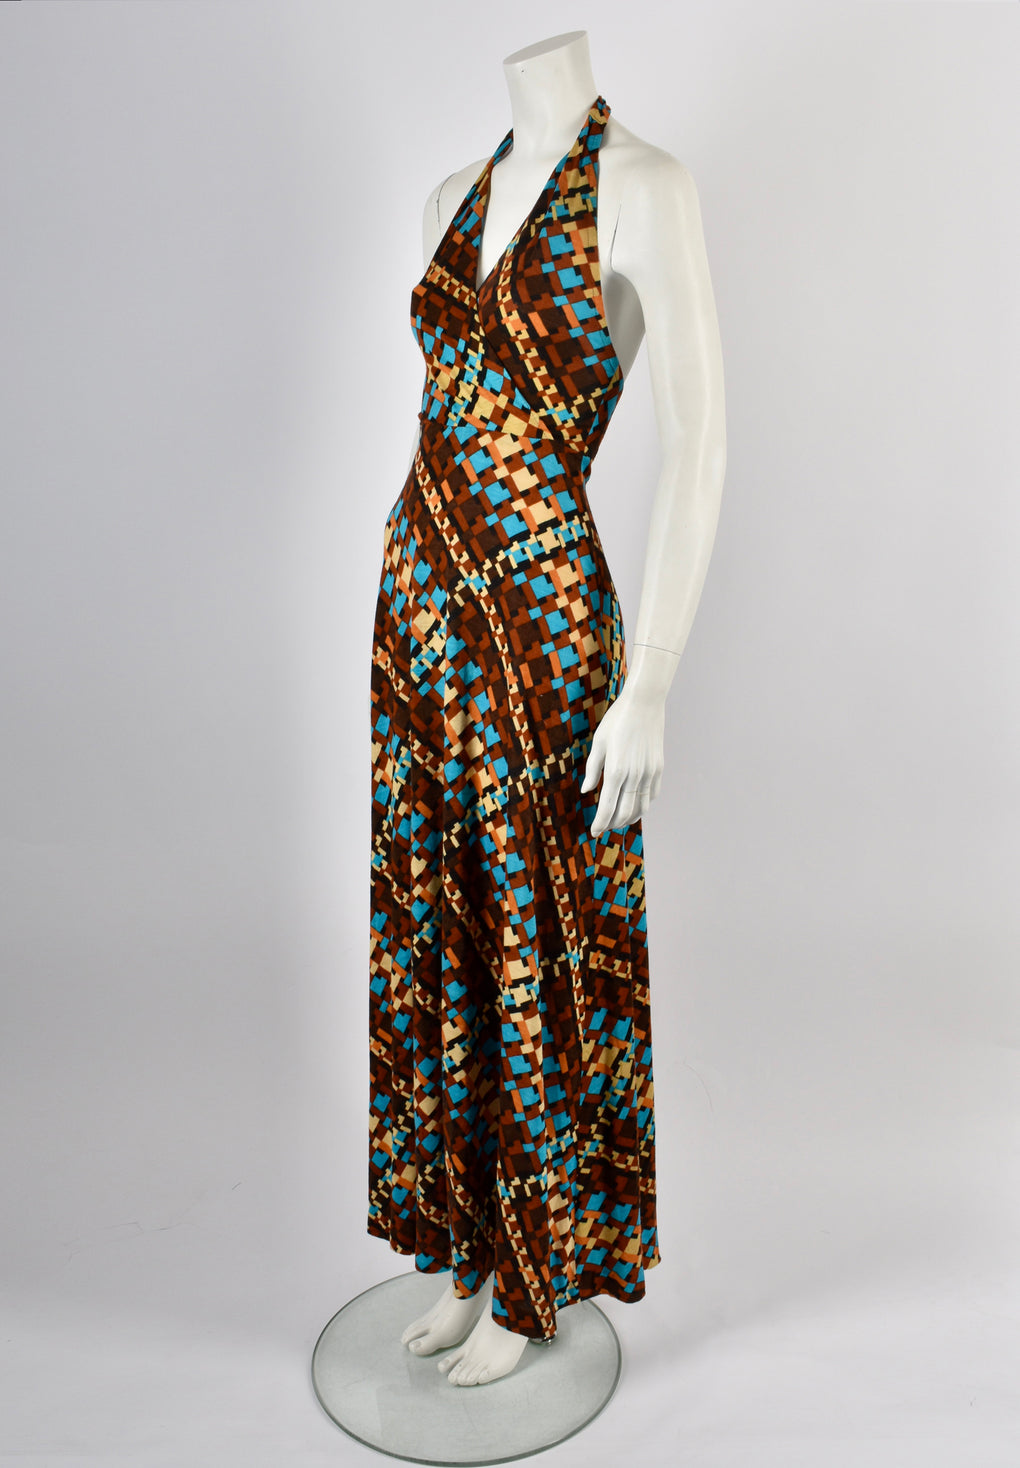 ARISTOS 70s halter neck dress / S-M